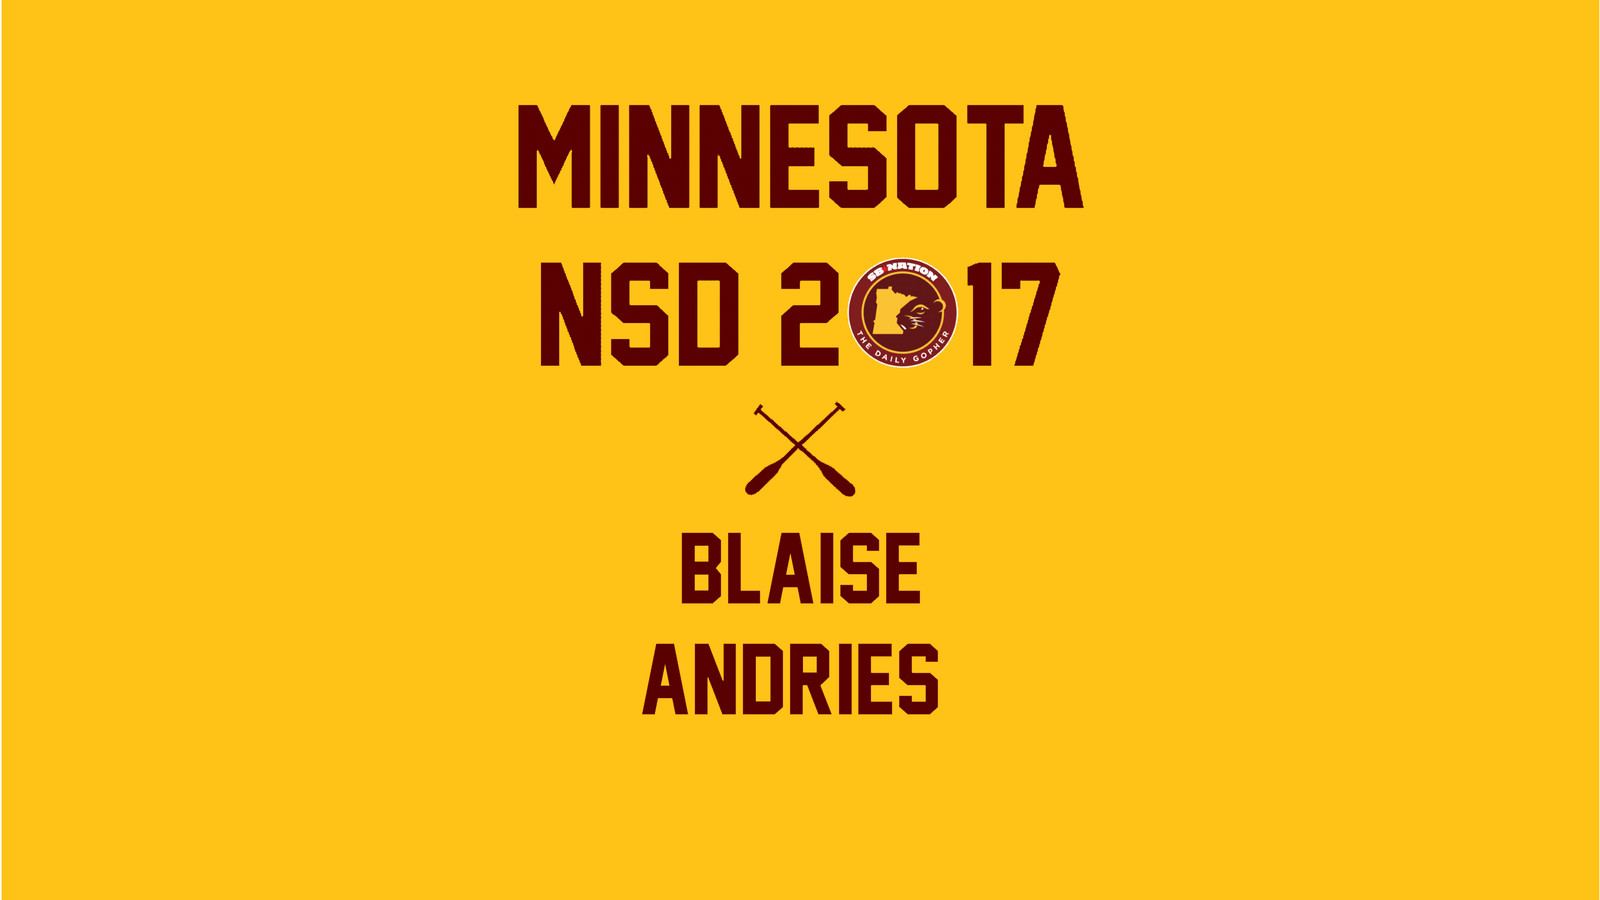 Nsd_2017_players_blaise_andries.0